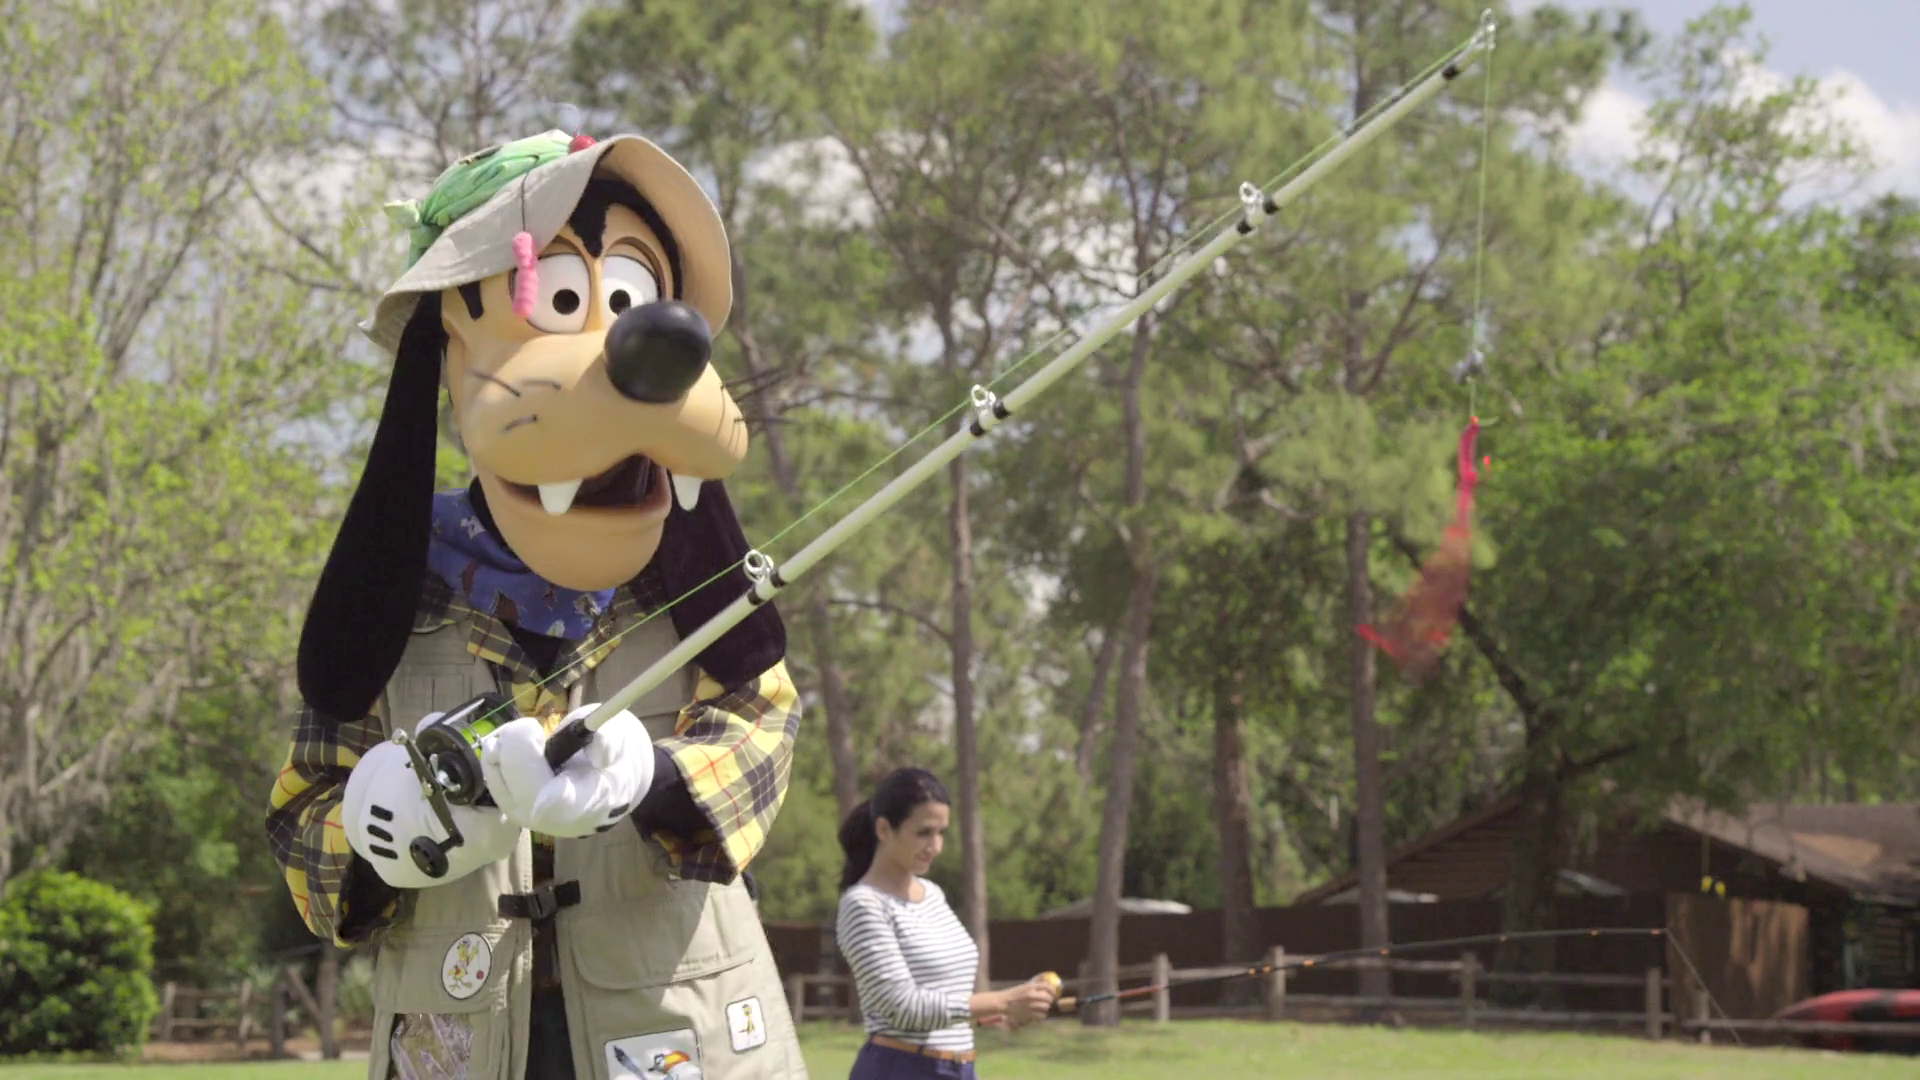 Goofy In The Art of Fishing